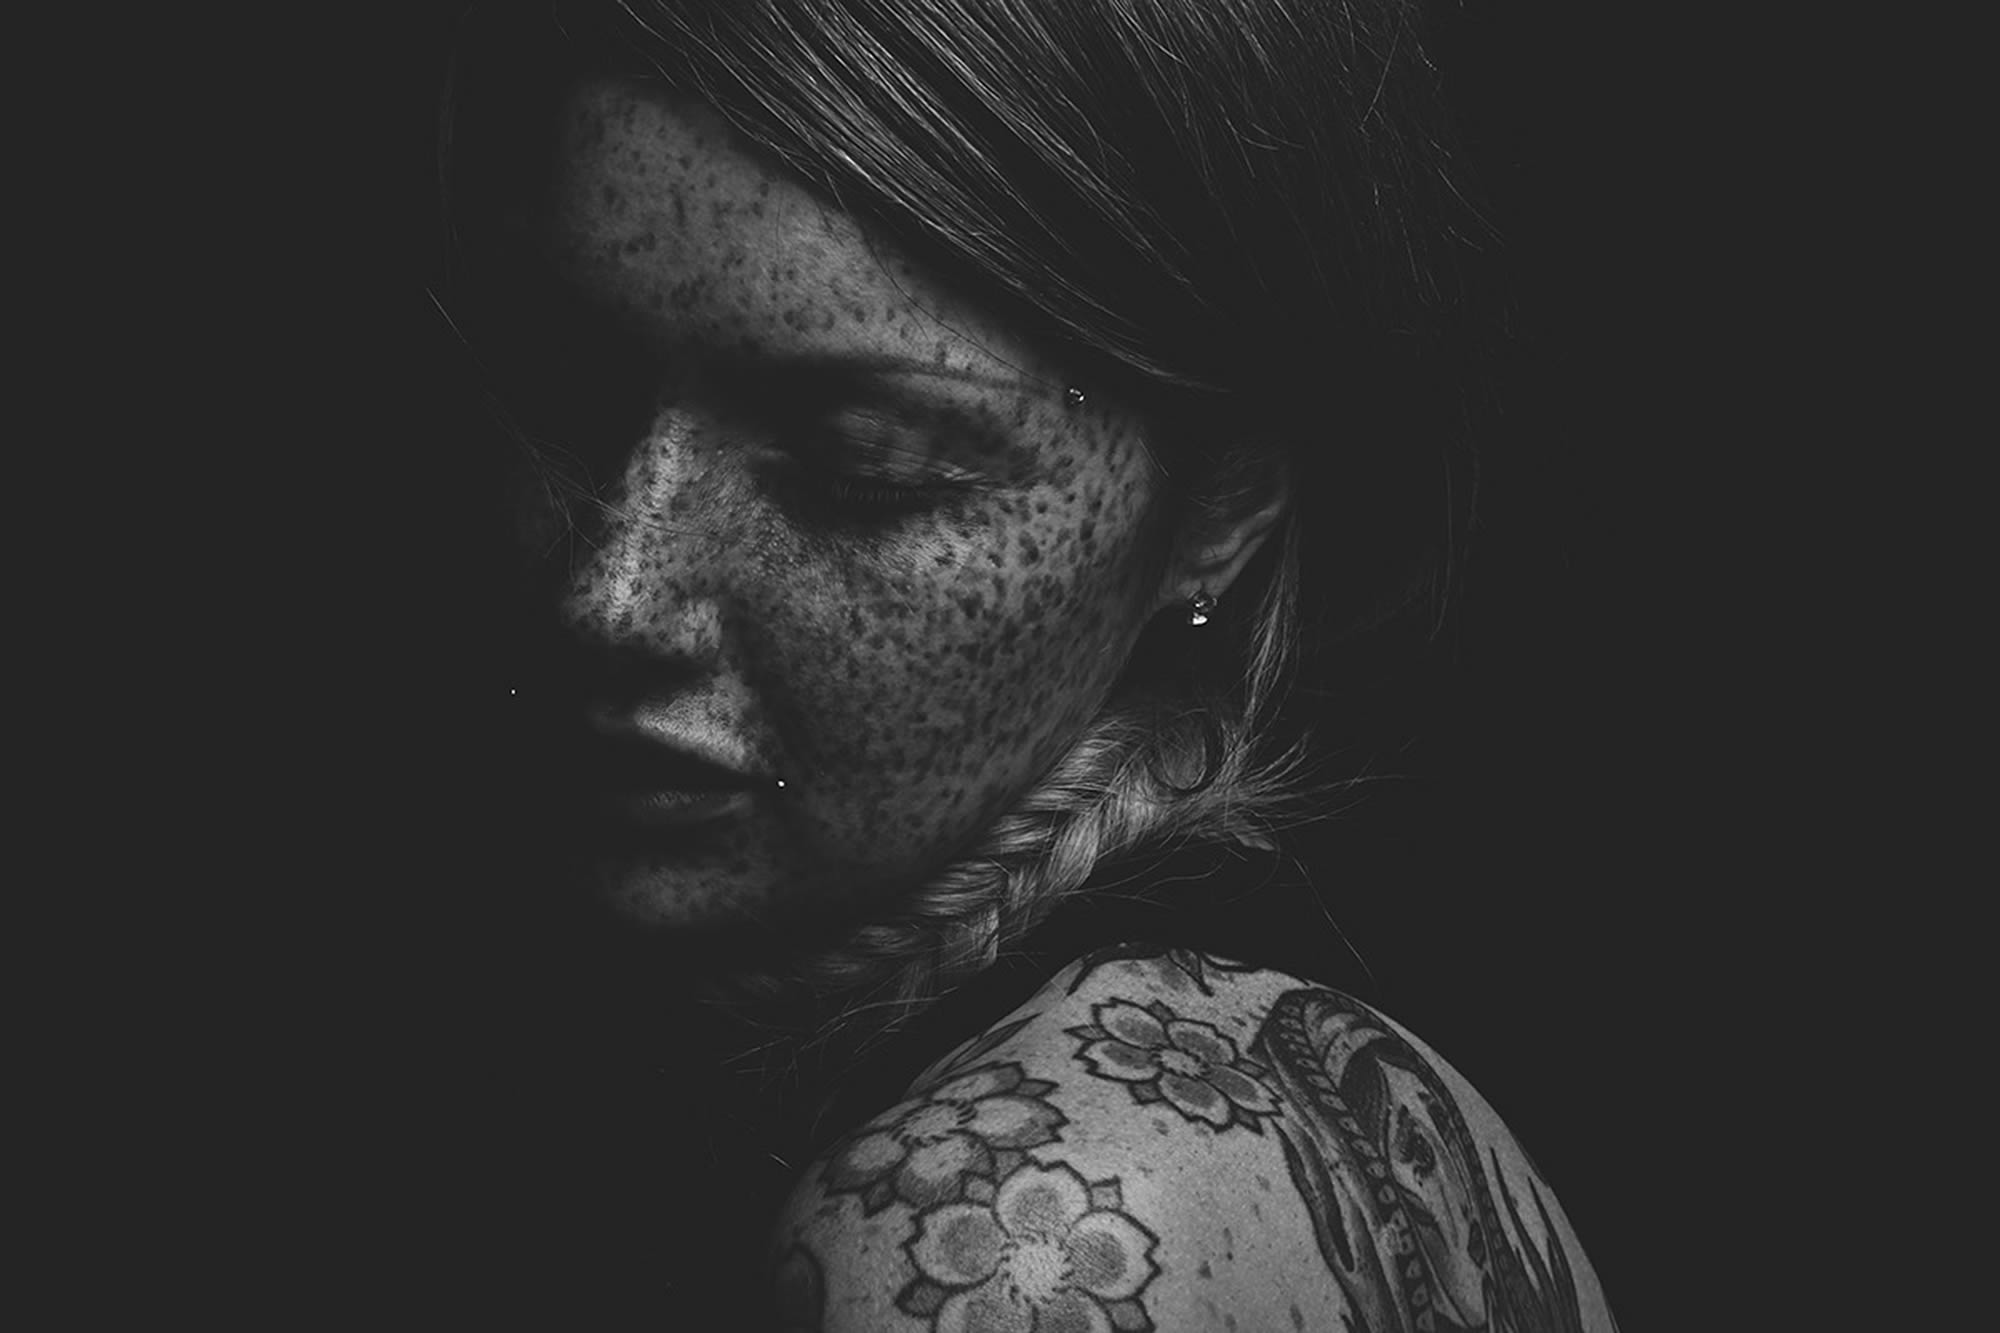 Mattia Crepaldi's Dark Portraits of Tattooed Models